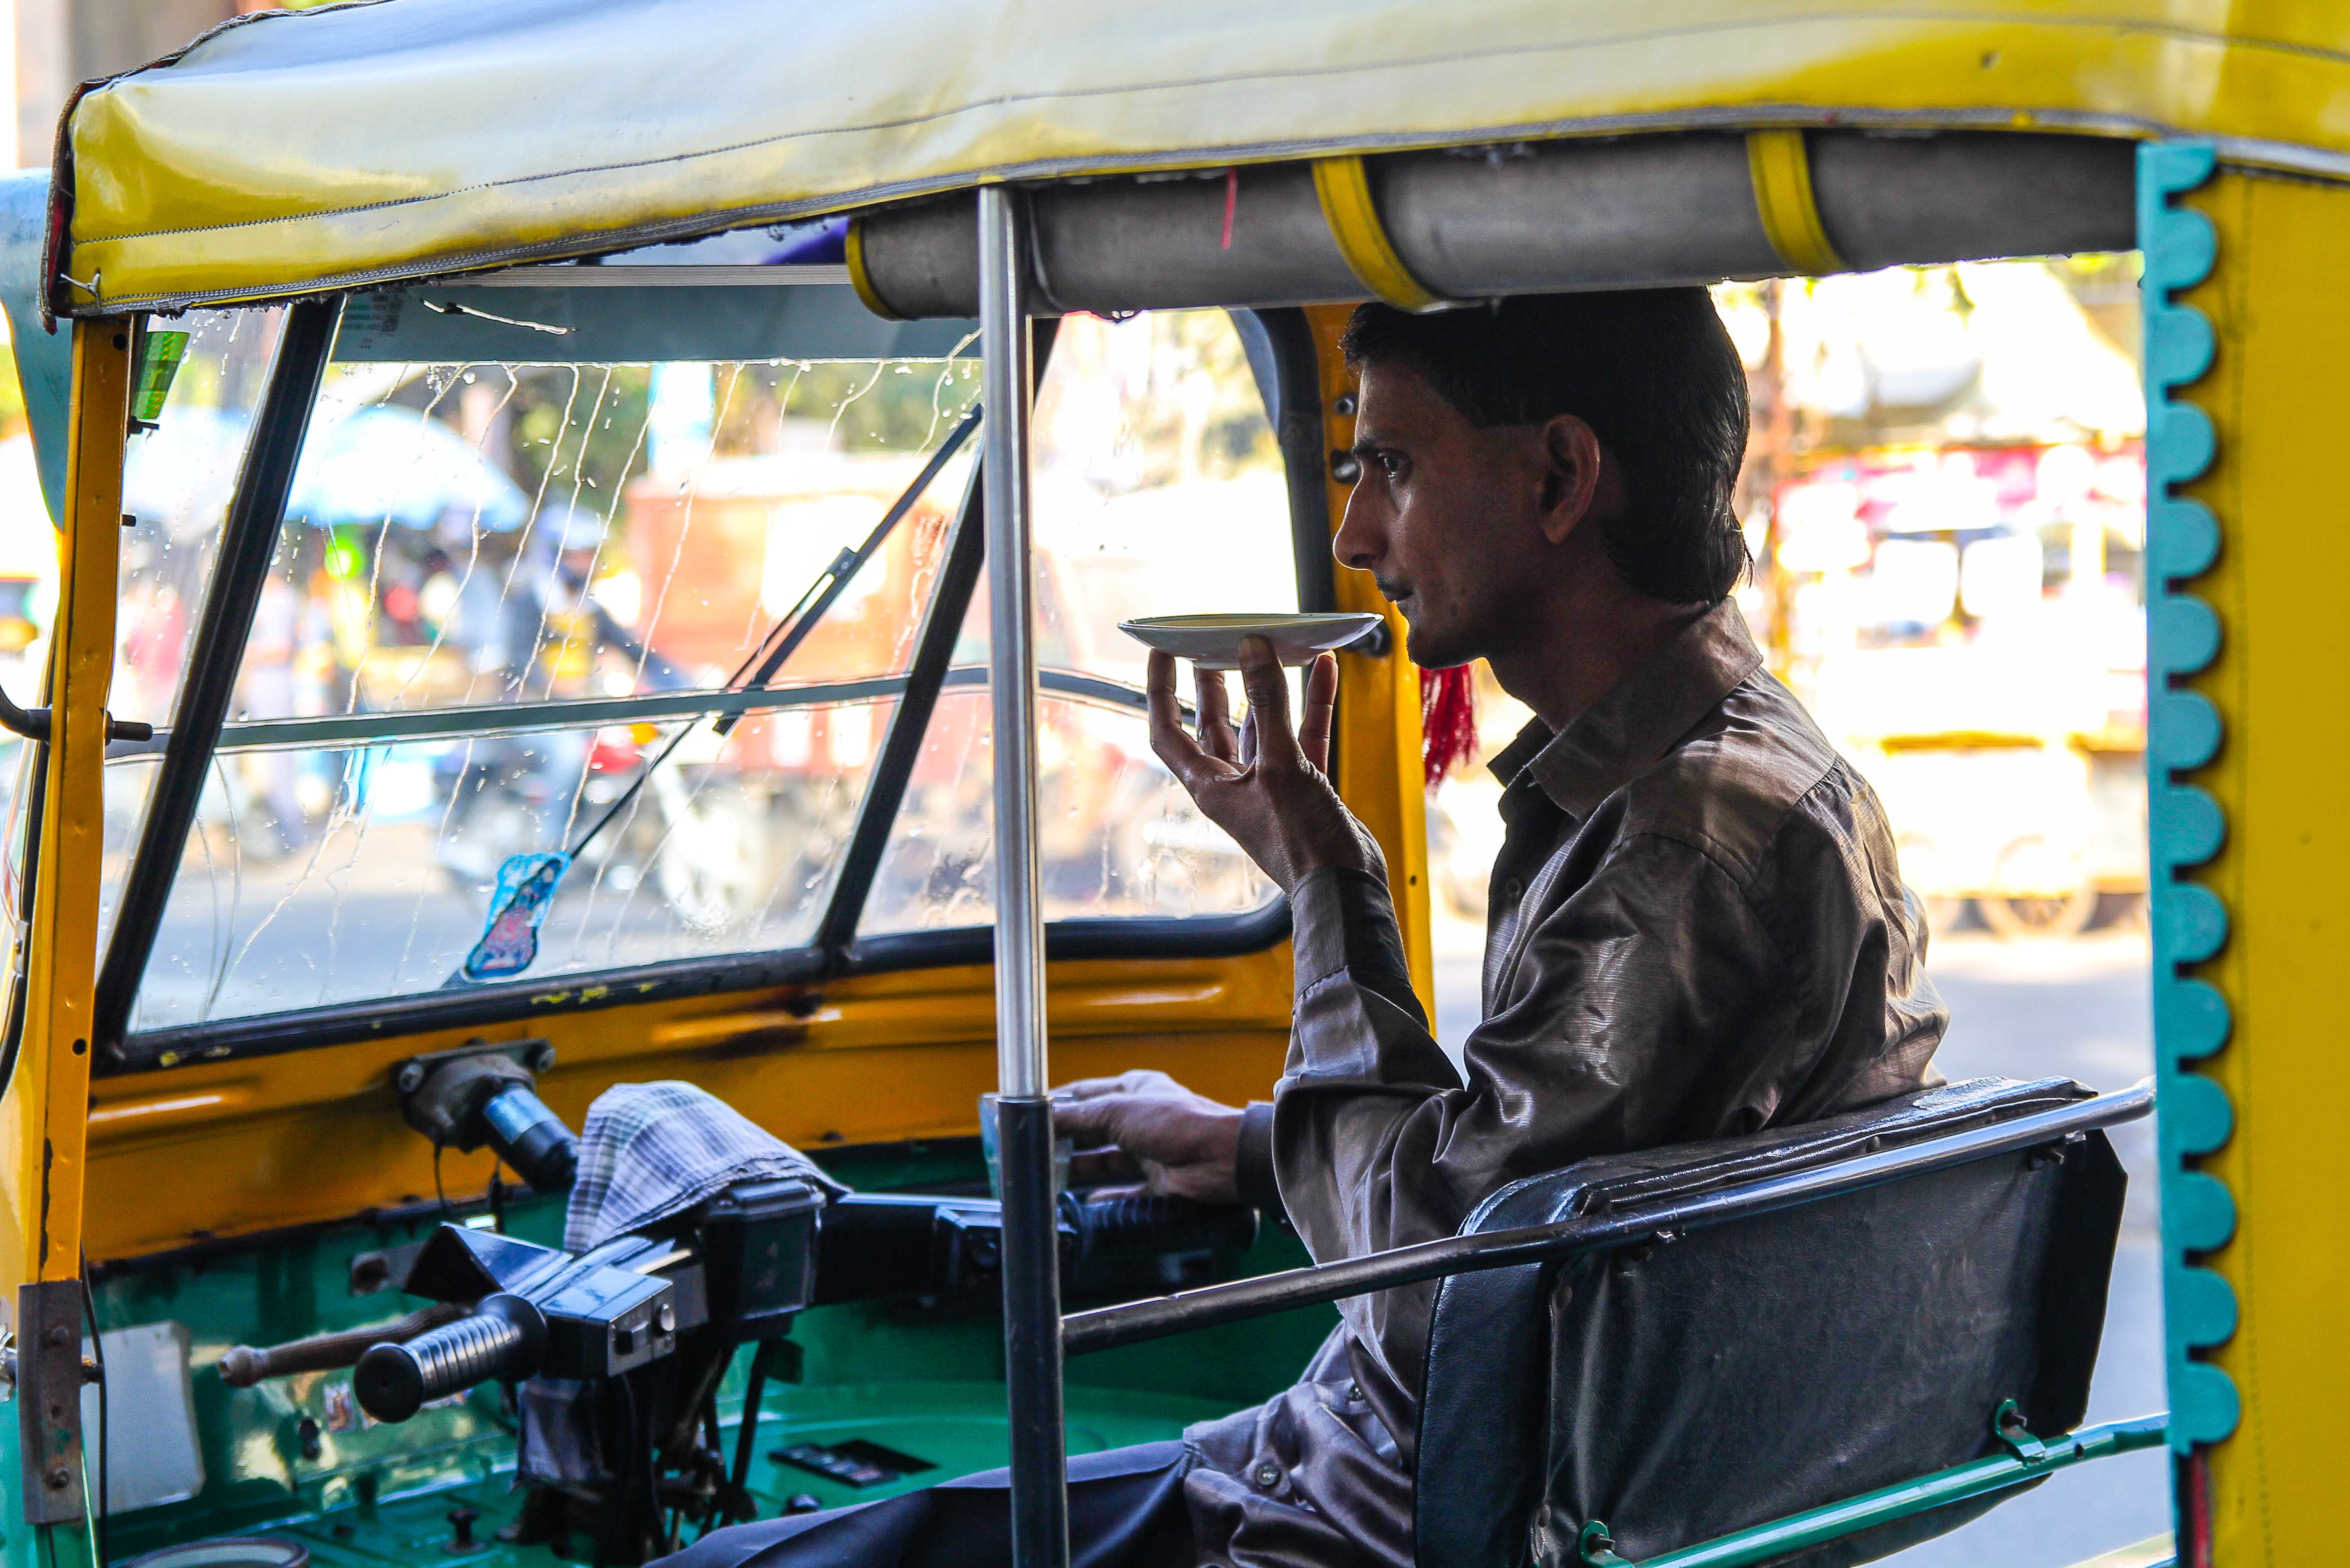 An auto-rickshaw driver sips Bharat Bhai's chai out of a saucer.